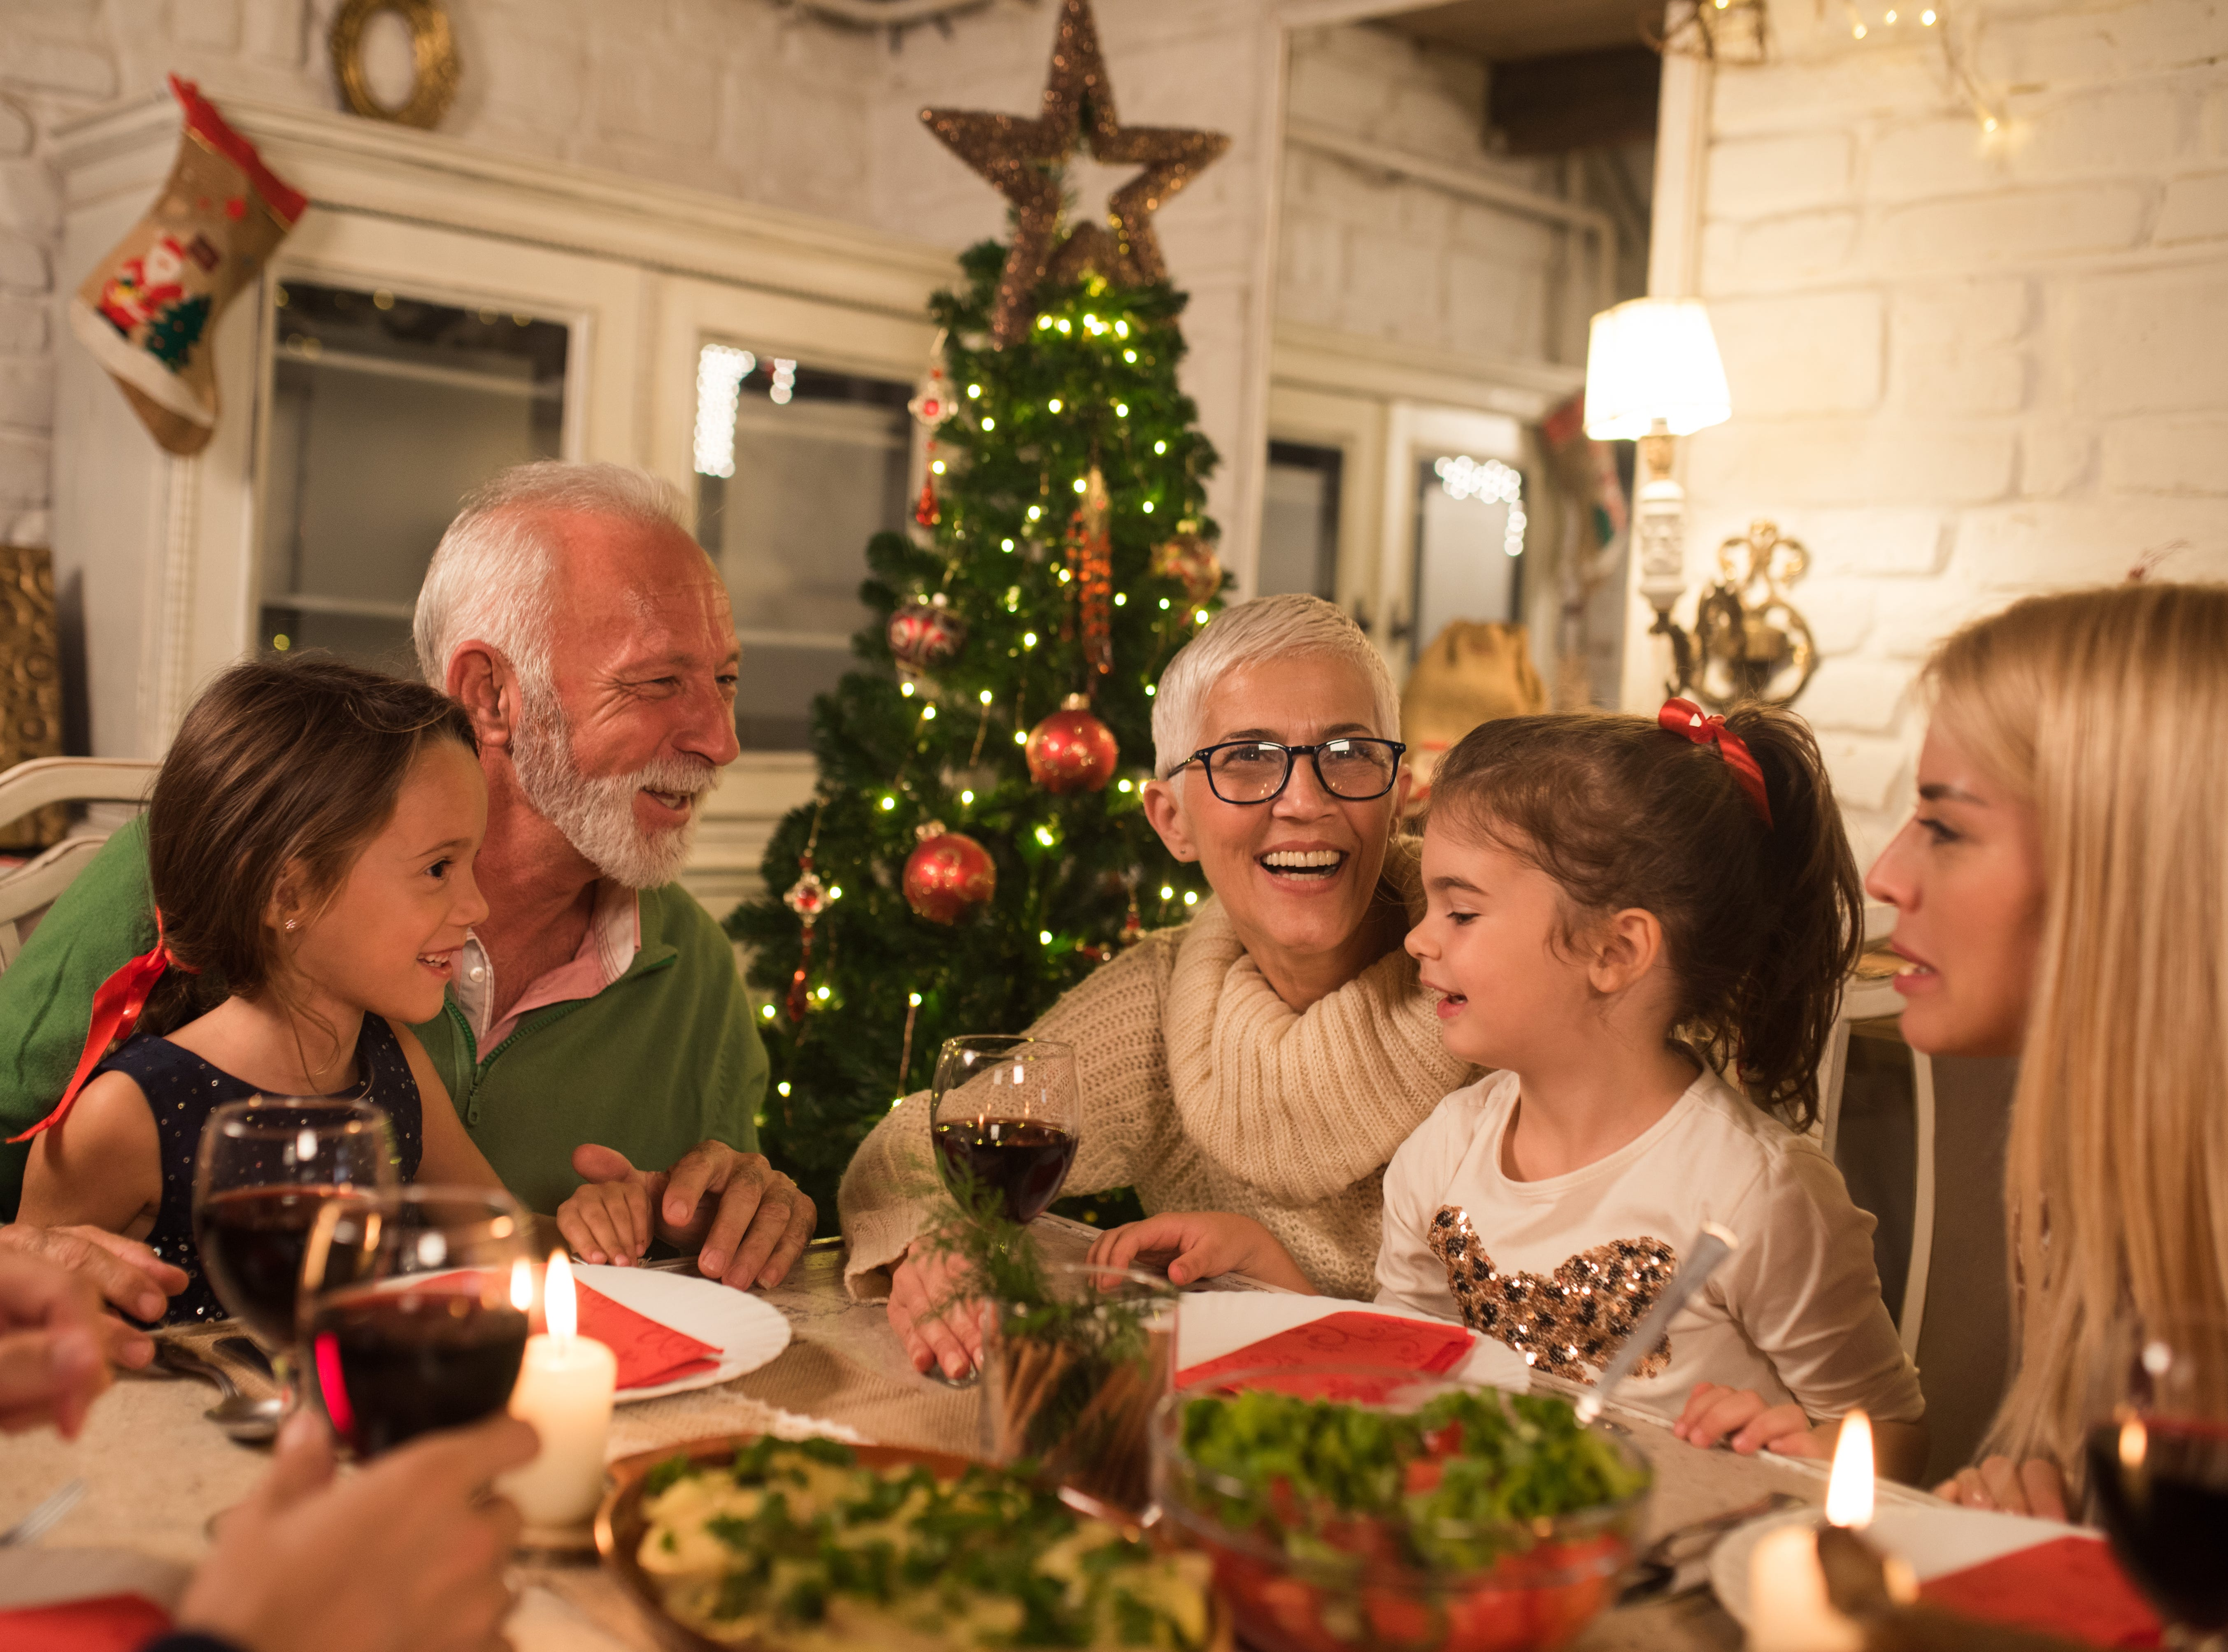 Holiday traditions can offer respite from uncertain moments